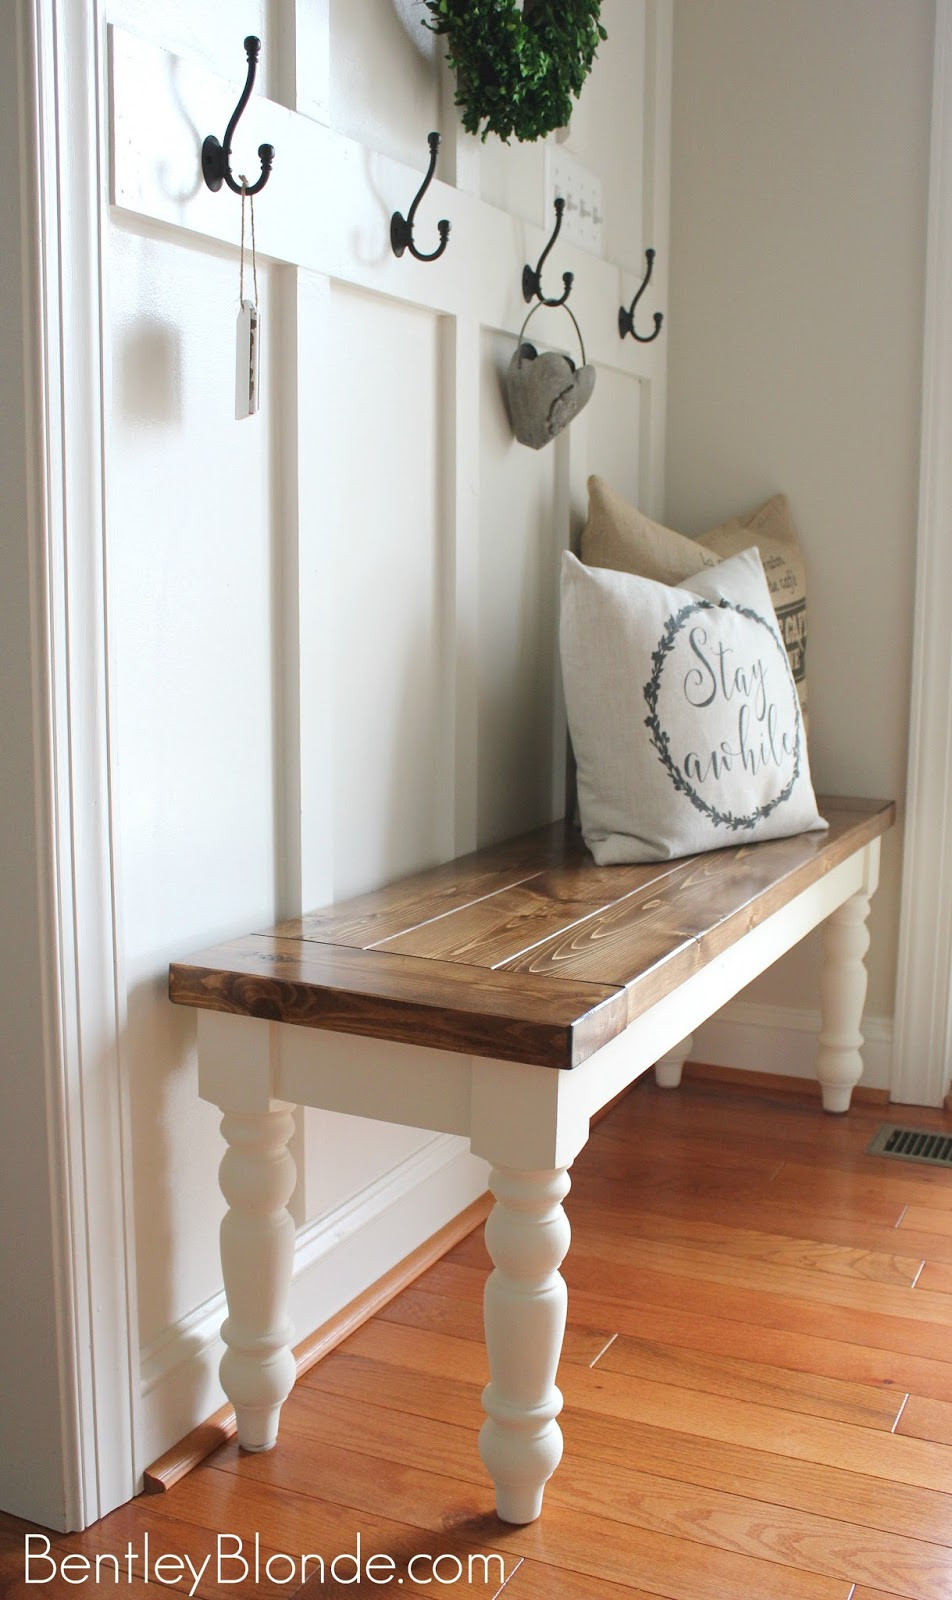 Best ideas about DIY Farmhouse Bench . Save or Pin BentleyBlonde DIY Farmhouse Bench Tutorial Now.